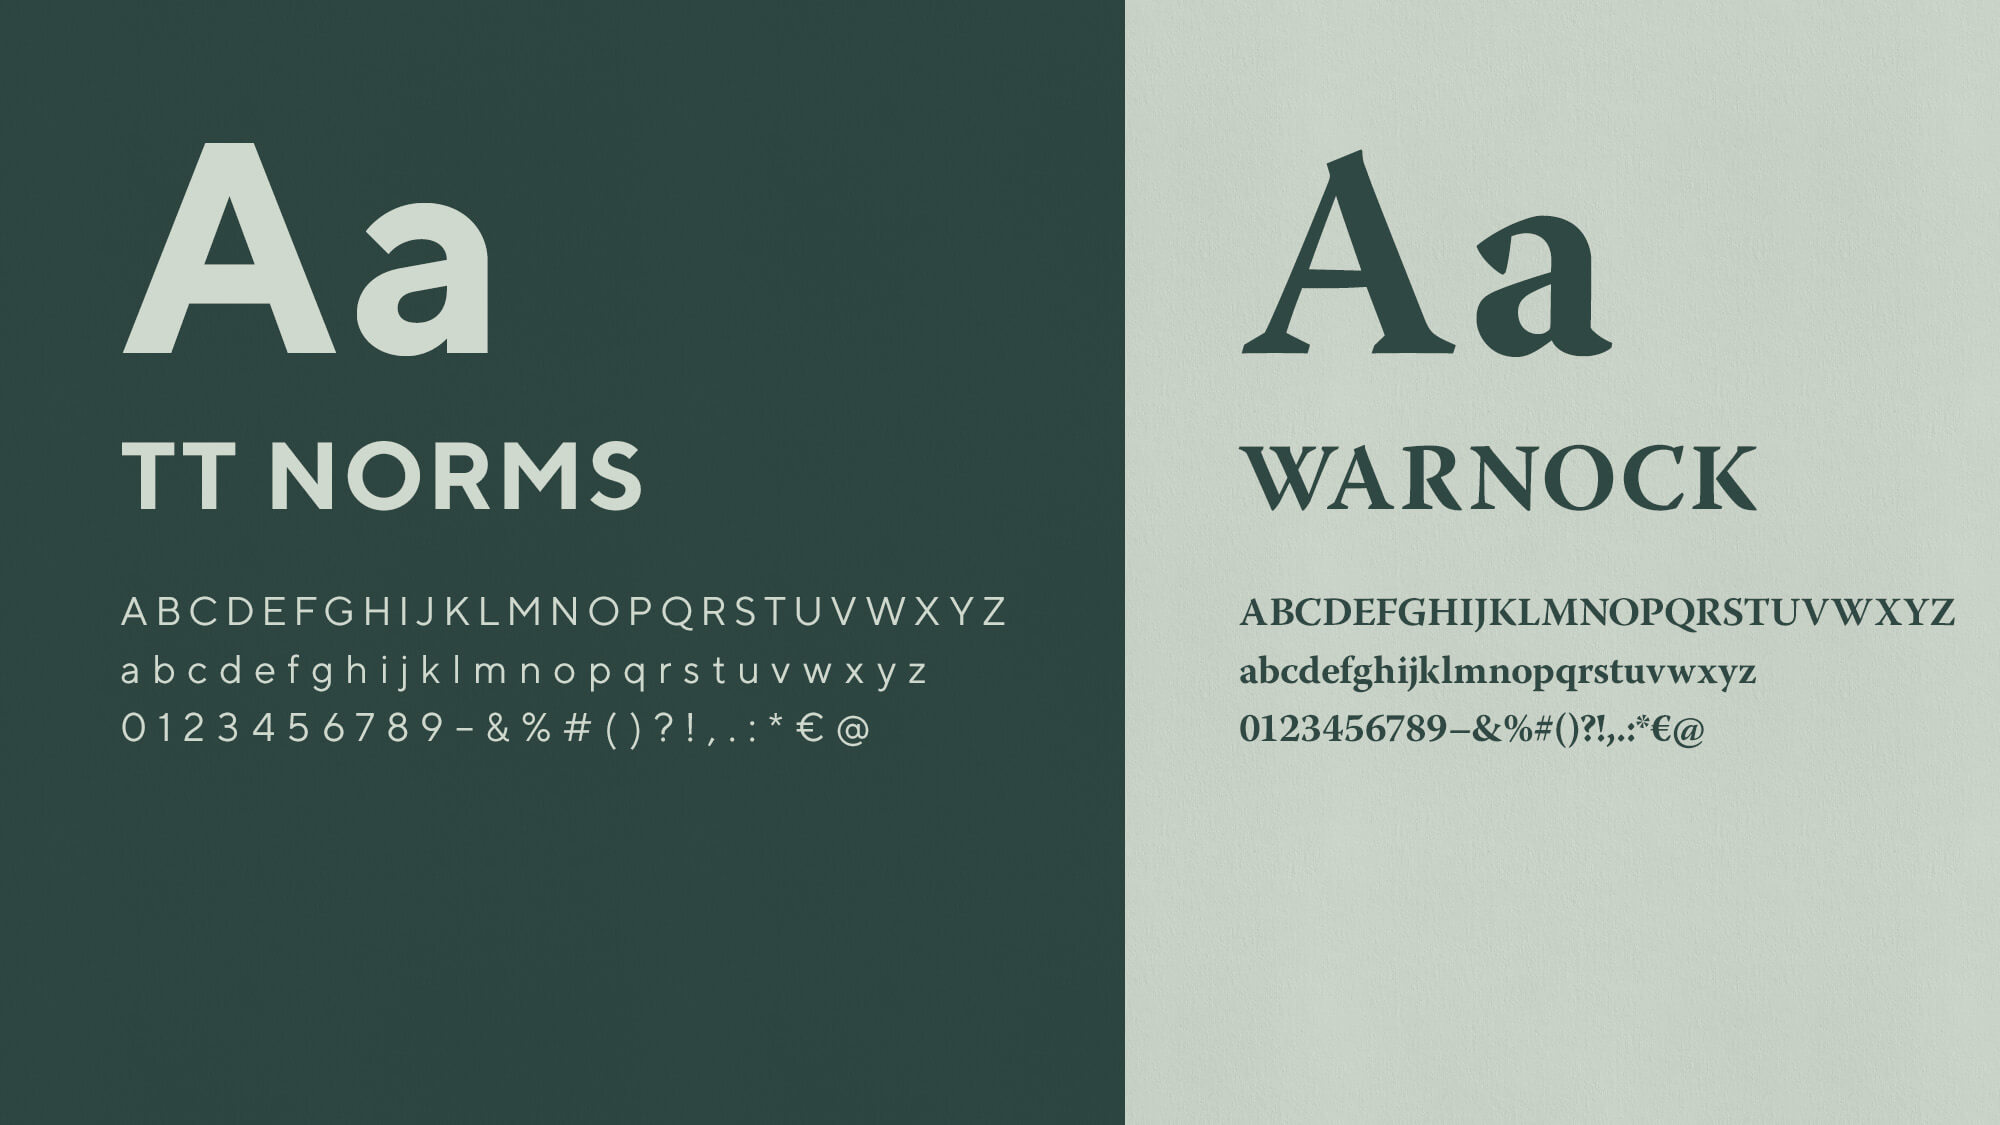 eichberg_identity_elements_fonts